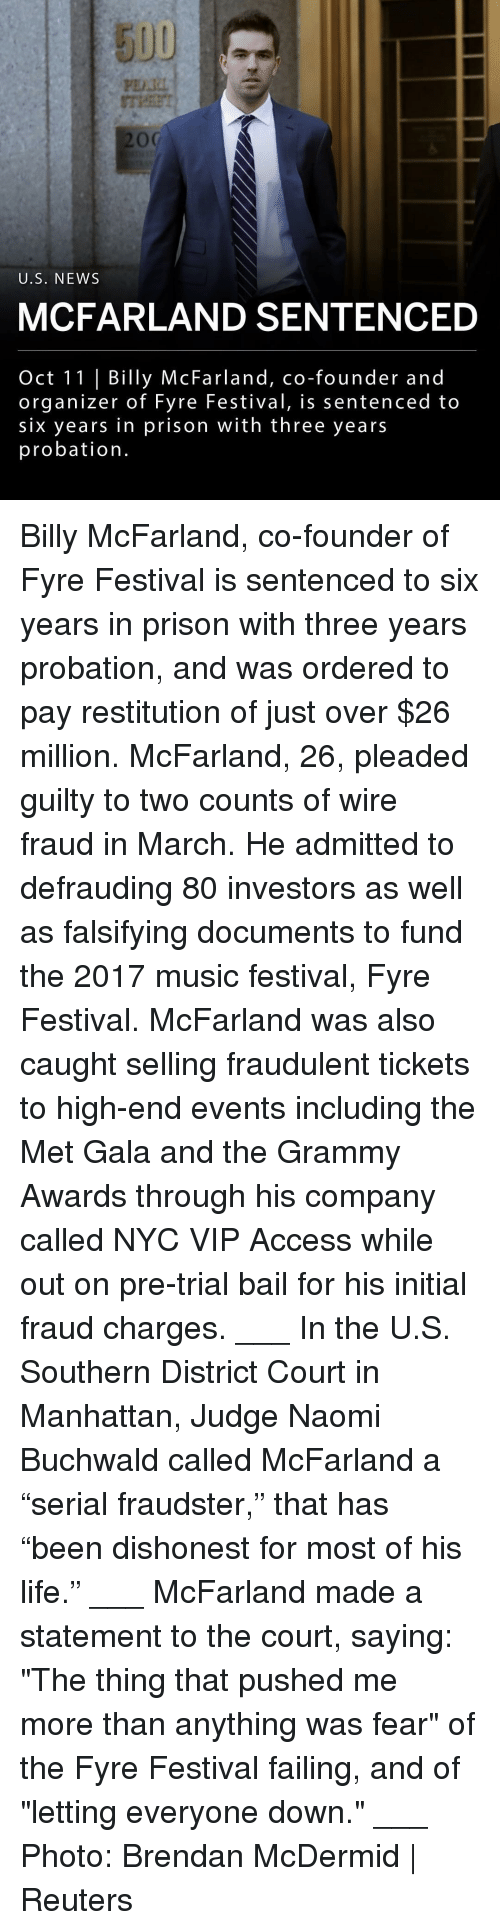 "Reuters: 5UU  PDI  U.S. NEWs  MCFARLAND SENTENCED  Oct 11 | Billy McFarland, co-founder and  organizer of Fyre Festival, is sentenced to  six years in prison with three years  probation. Billy McFarland, co-founder of Fyre Festival is sentenced to six years in prison with three years probation, and was ordered to pay restitution of just over $26 million. McFarland, 26, pleaded guilty to two counts of wire fraud in March. He admitted to defrauding 80 investors as well as falsifying documents to fund the 2017 music festival, Fyre Festival. McFarland was also caught selling fraudulent tickets to high-end events including the Met Gala and the Grammy Awards through his company called NYC VIP Access while out on pre-trial bail for his initial fraud charges. ___ In the U.S. Southern District Court in Manhattan, Judge Naomi Buchwald called McFarland a ""serial fraudster,"" that has ""been dishonest for most of his life."" ___ McFarland made a statement to the court, saying: ""The thing that pushed me more than anything was fear"" of the Fyre Festival failing, and of ""letting everyone down."" ___ Photo: Brendan McDermid 